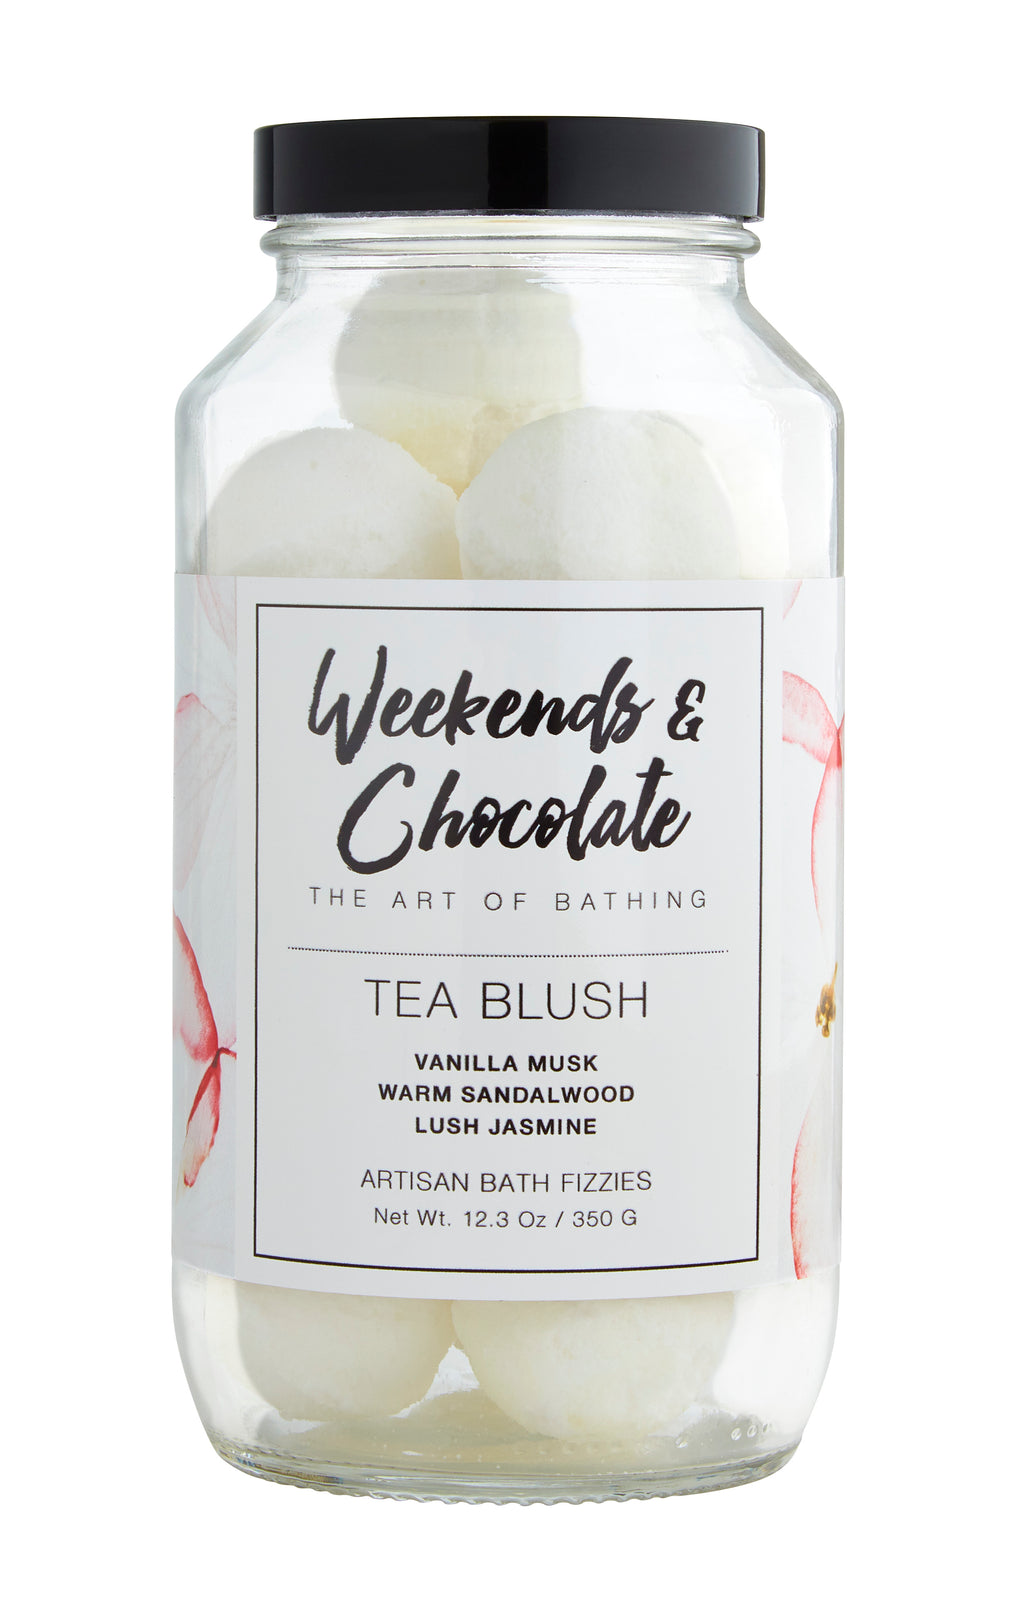 Tea Blush Bath Fizzies